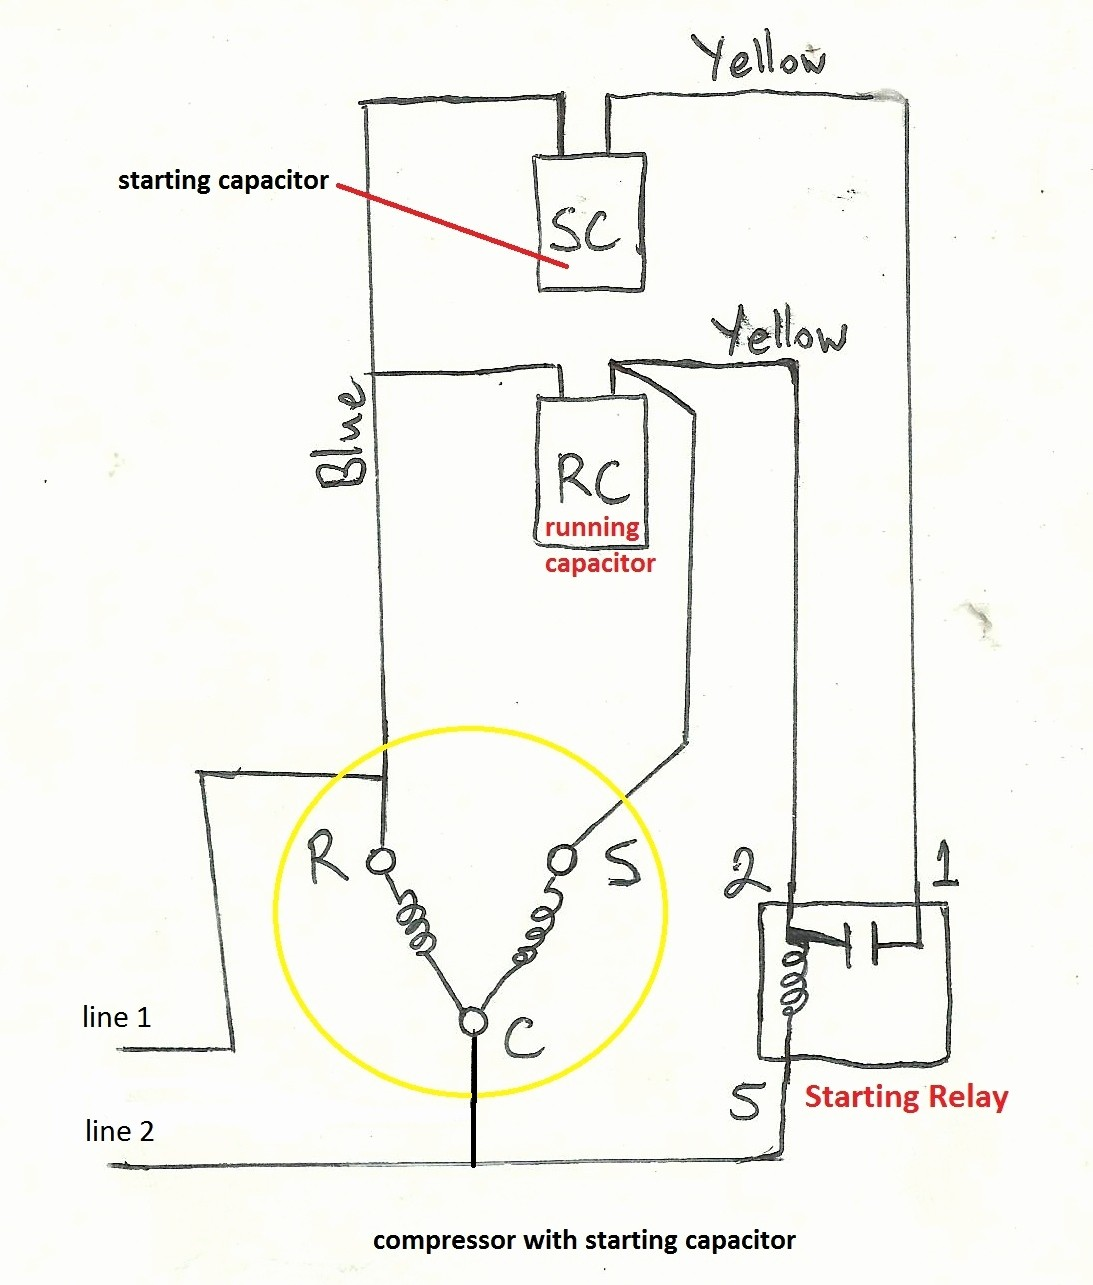 ac clutch wiring diagram wiring diagram golac clutch wiring diagram data wiring diagram air conditioner compressor wiring diagram ac clutch wiring diagram